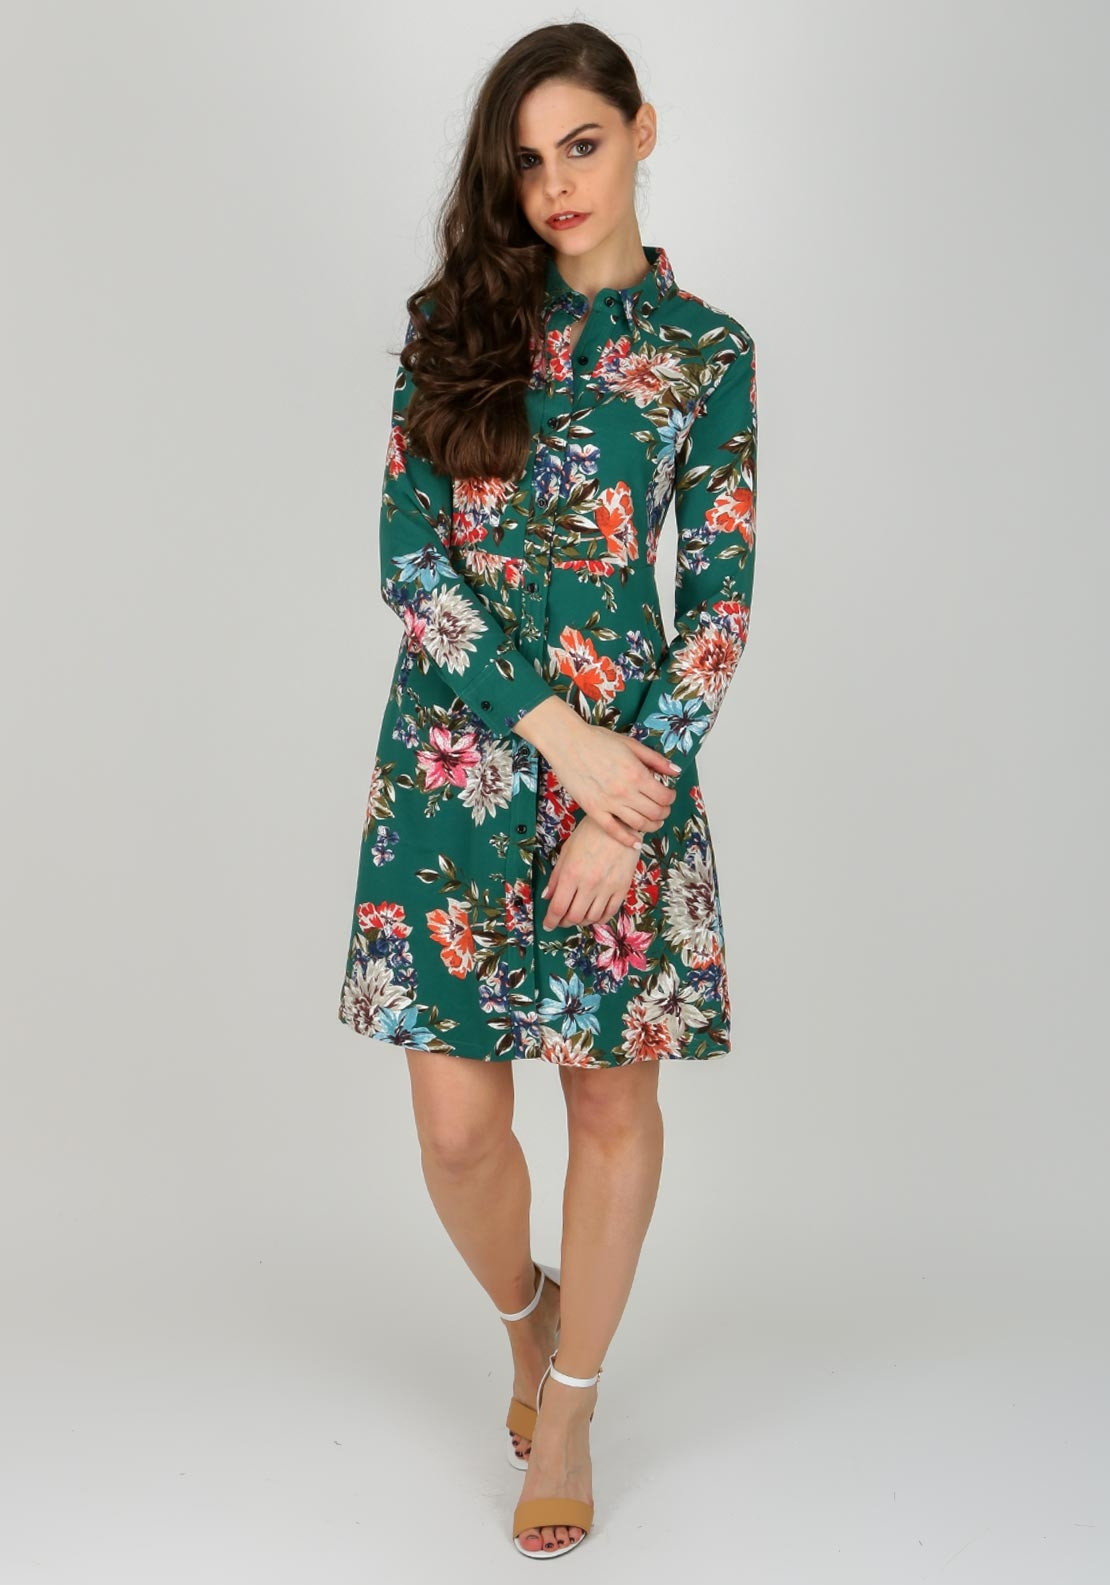 c7fa3f5c26 Boutique Floral Print Aline Shirt Dress